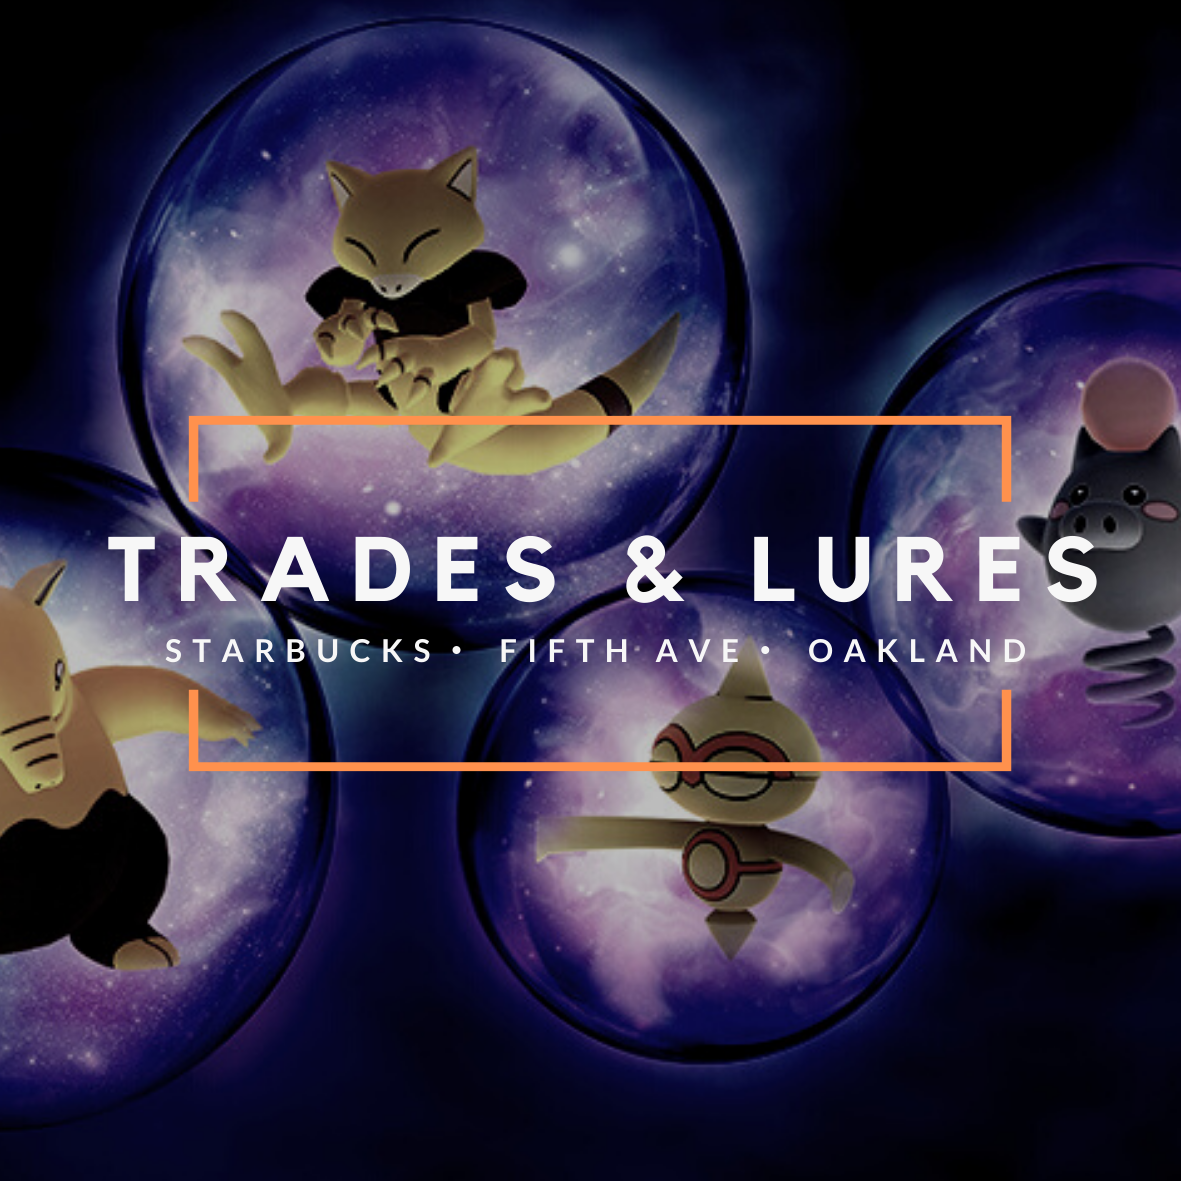 Cancelled: Trades and Lures at Starbucks (Fifth Avenue)